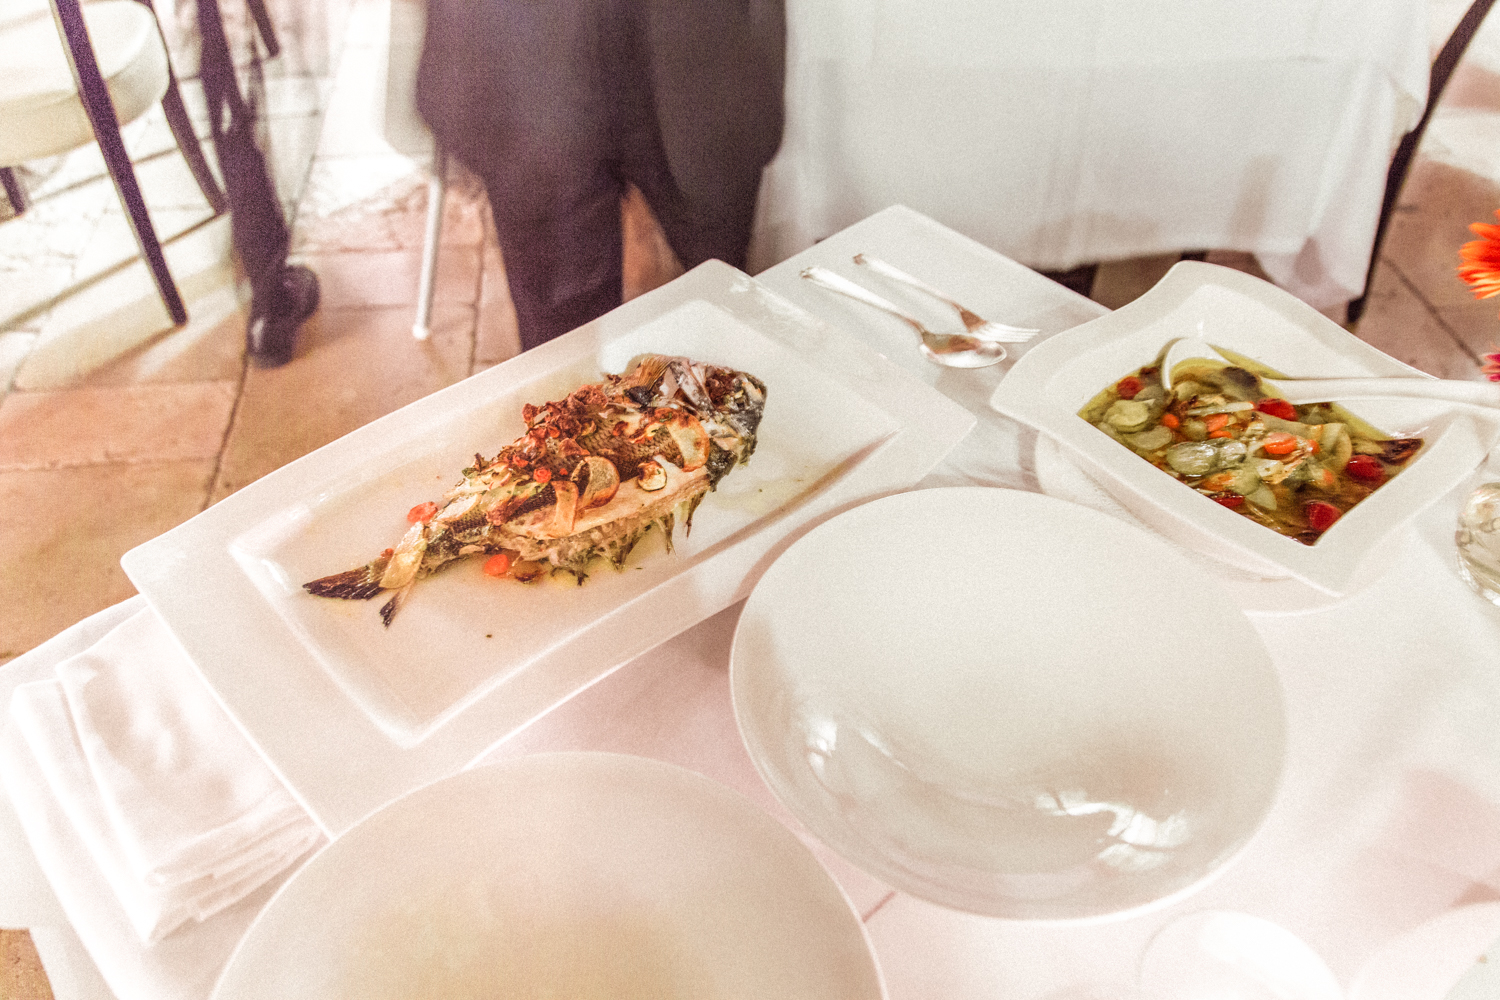 Fine Dining Cuisine and Food at Masseria Torre Coccaro in Puglia, Italy (14 of 17).jpg